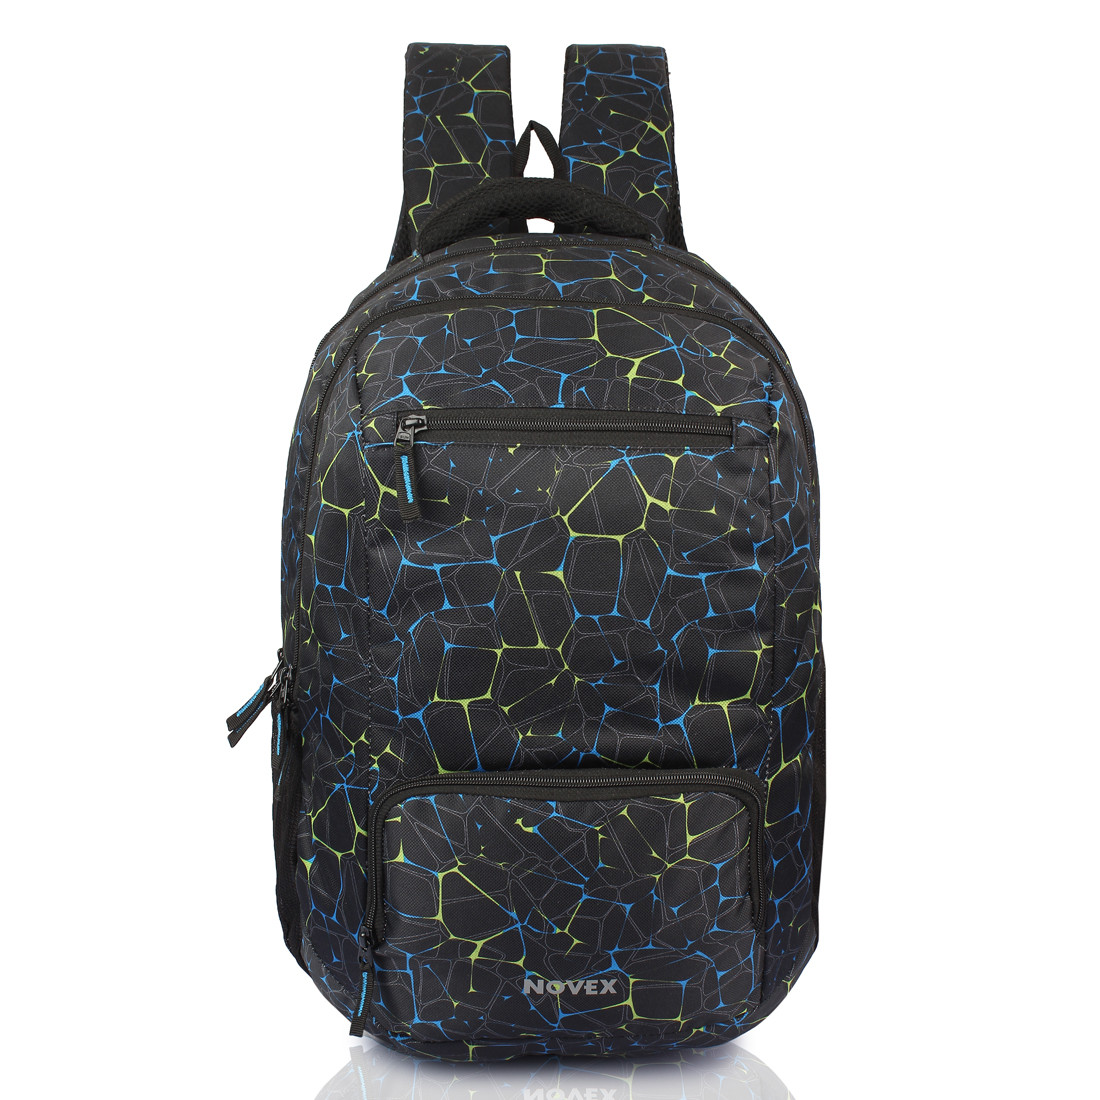 9511c5e1c2 Novex Polyester School Bag / Backpack - Luggages & Travel Bags